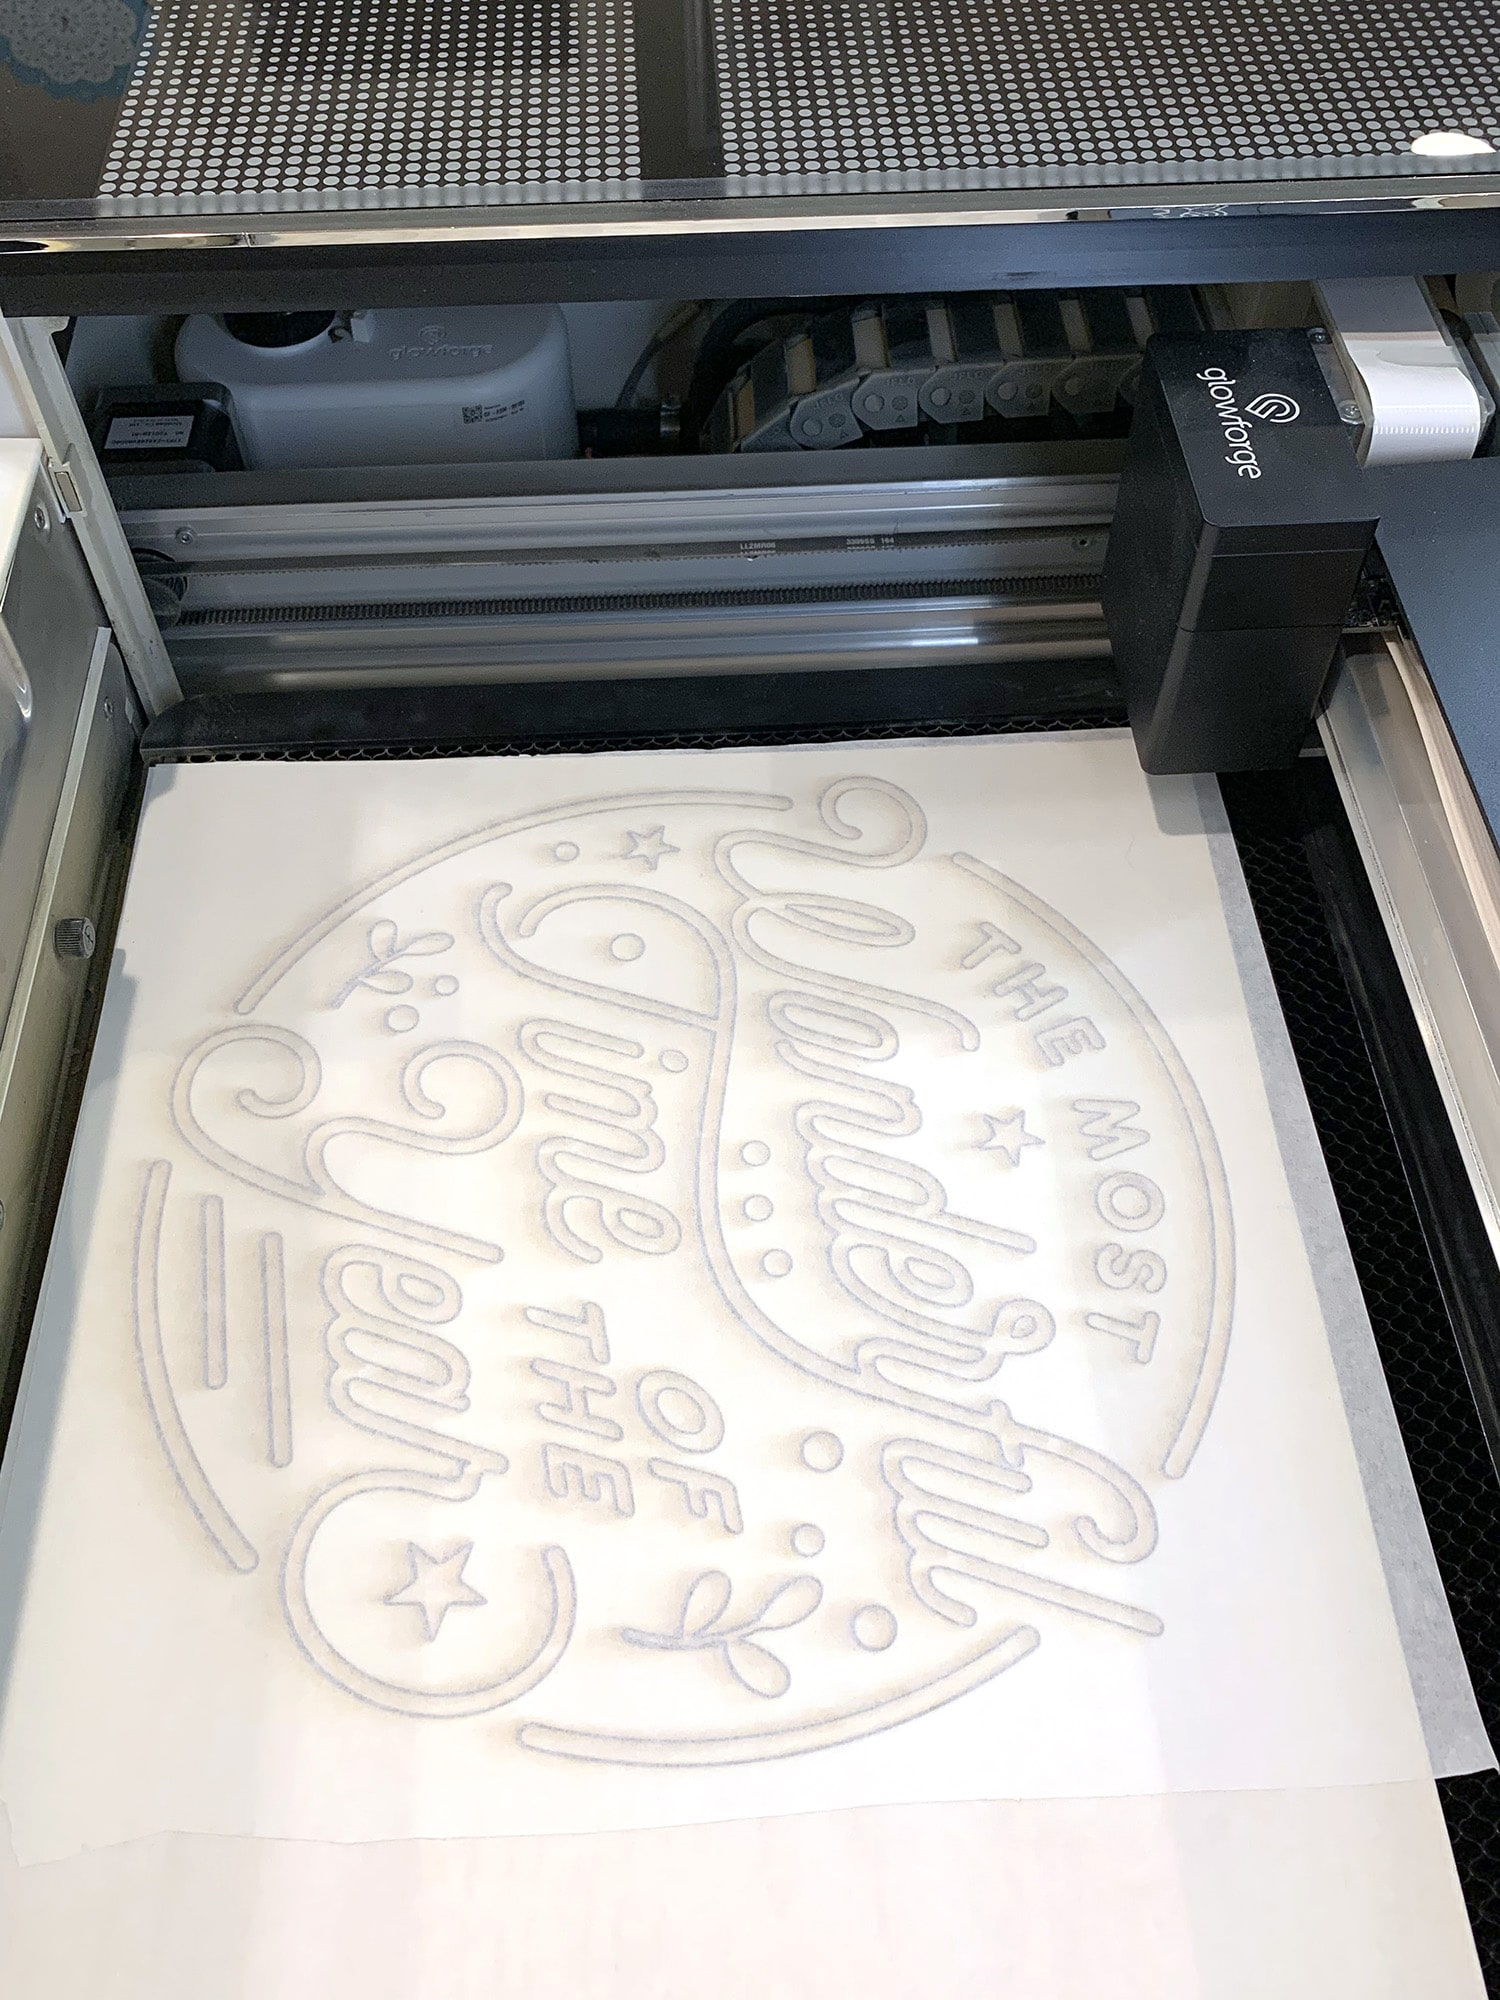 Laser Cut Wood Sign in Glowforge with second layer of masking adding to top of cut pieces